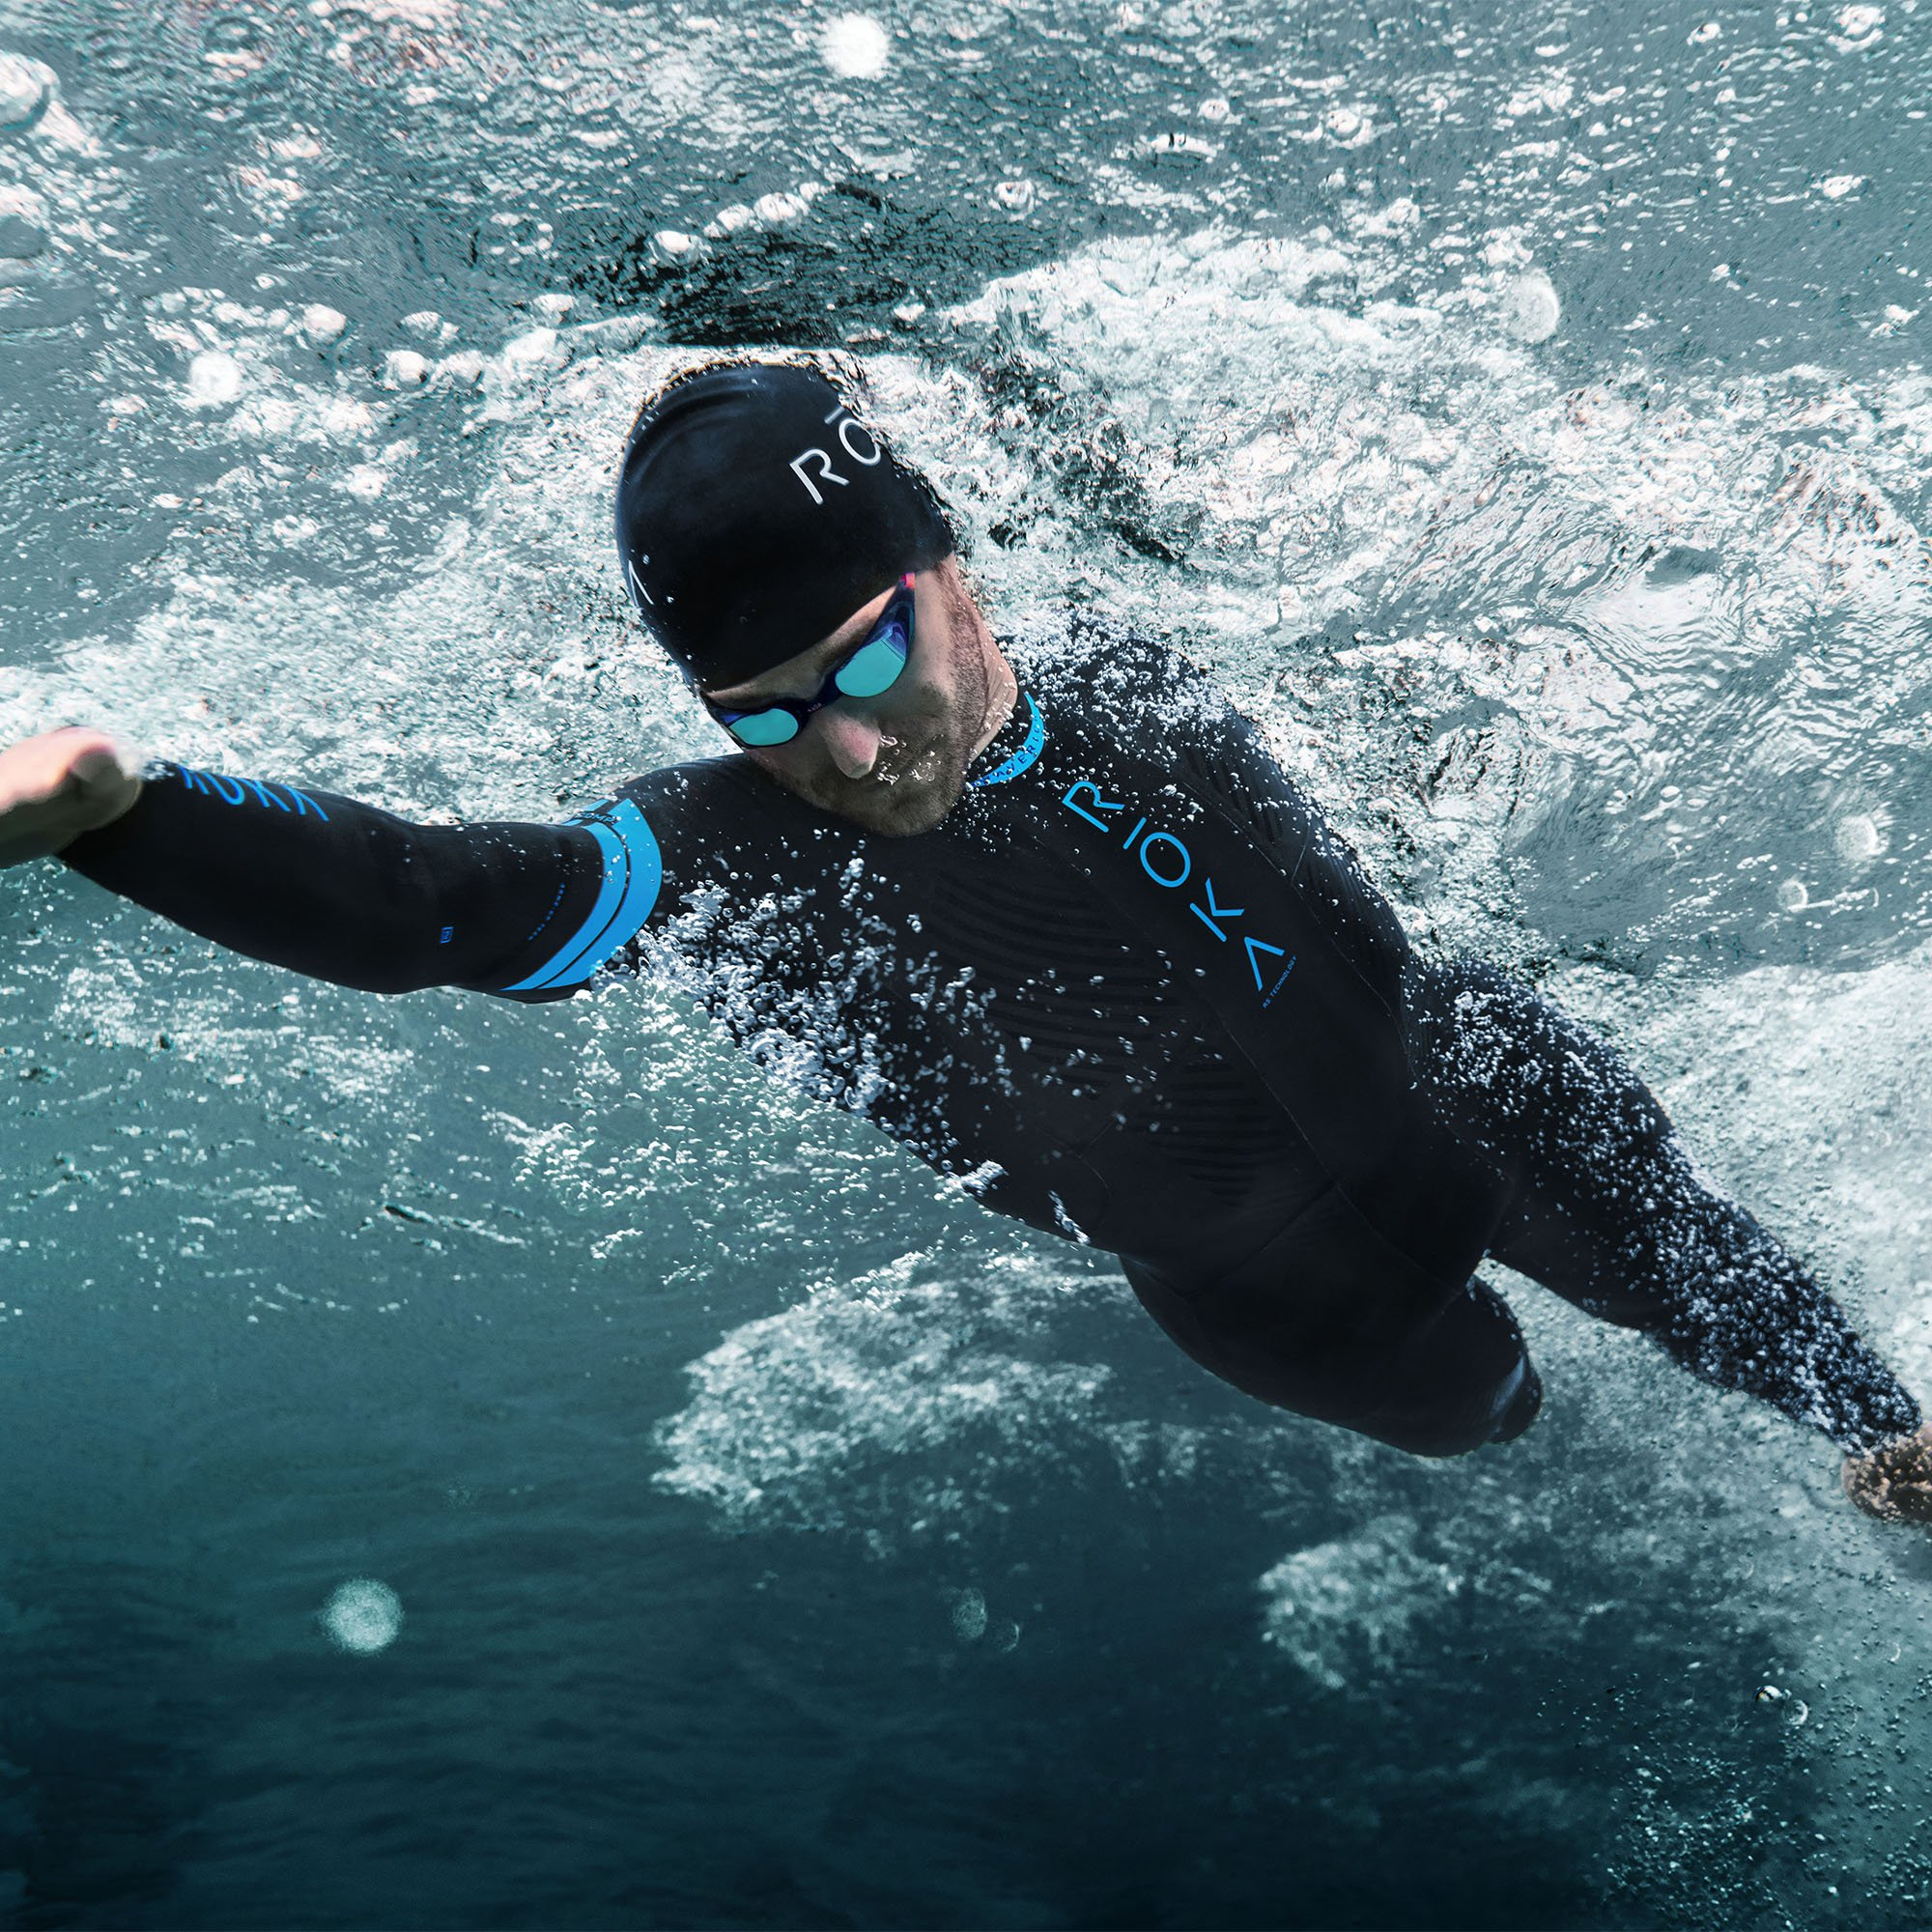 ROKA Maverick Comp II Men's Wetsuit for Swimming and Triathlons - Black/Cyan - Extra Large (XL) by ROKA (Image #4)